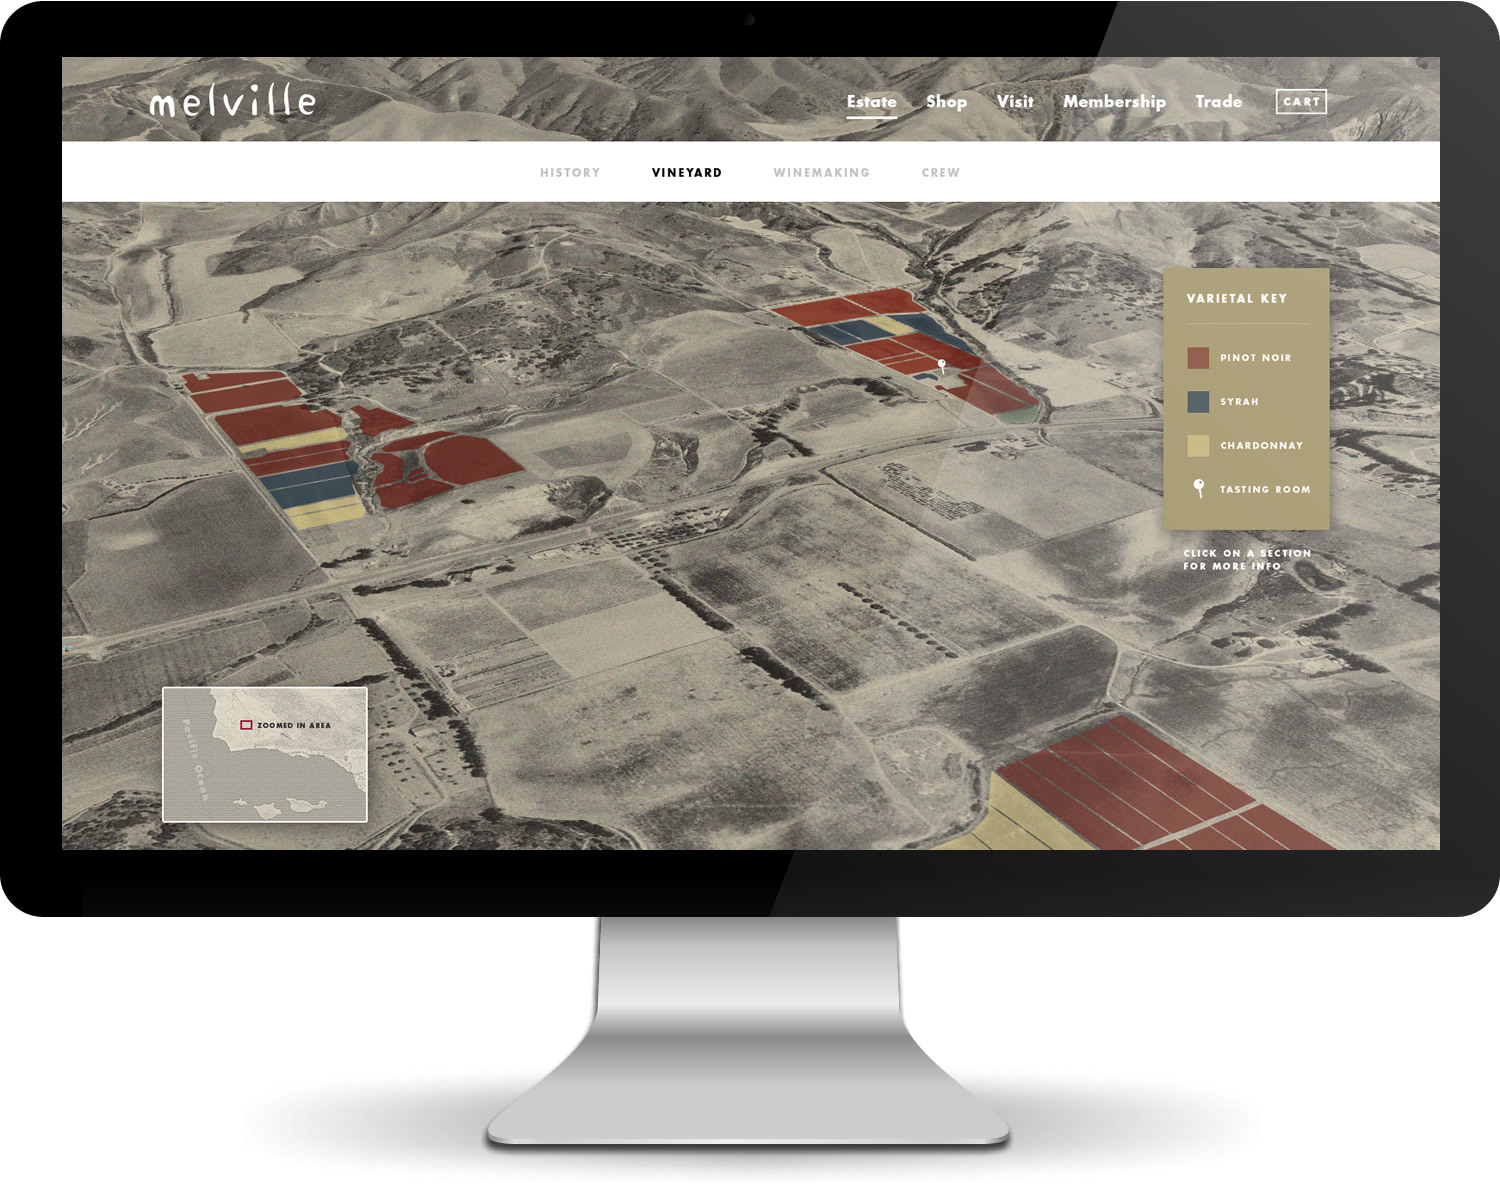 Leo-Basica-design-melville-winery-web-design1